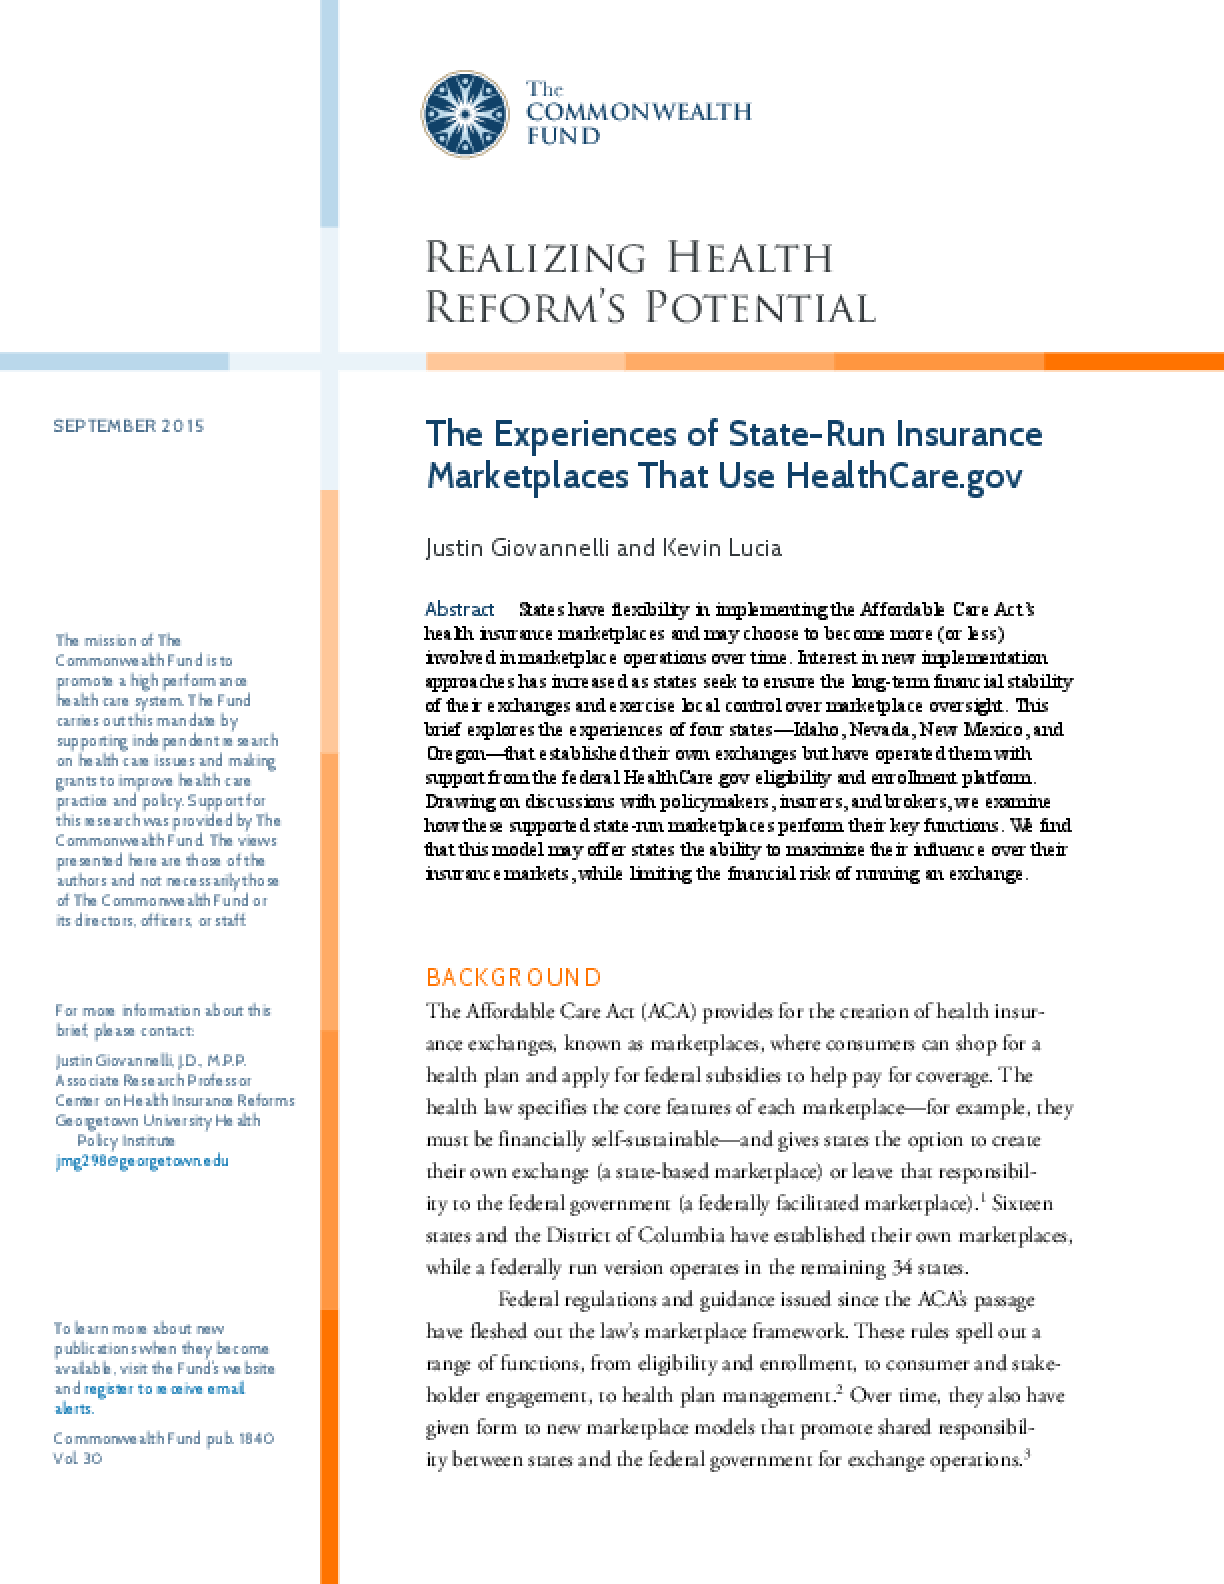 The Experiences of State-Run Insurance Marketplaces That Use HealthCare.gov